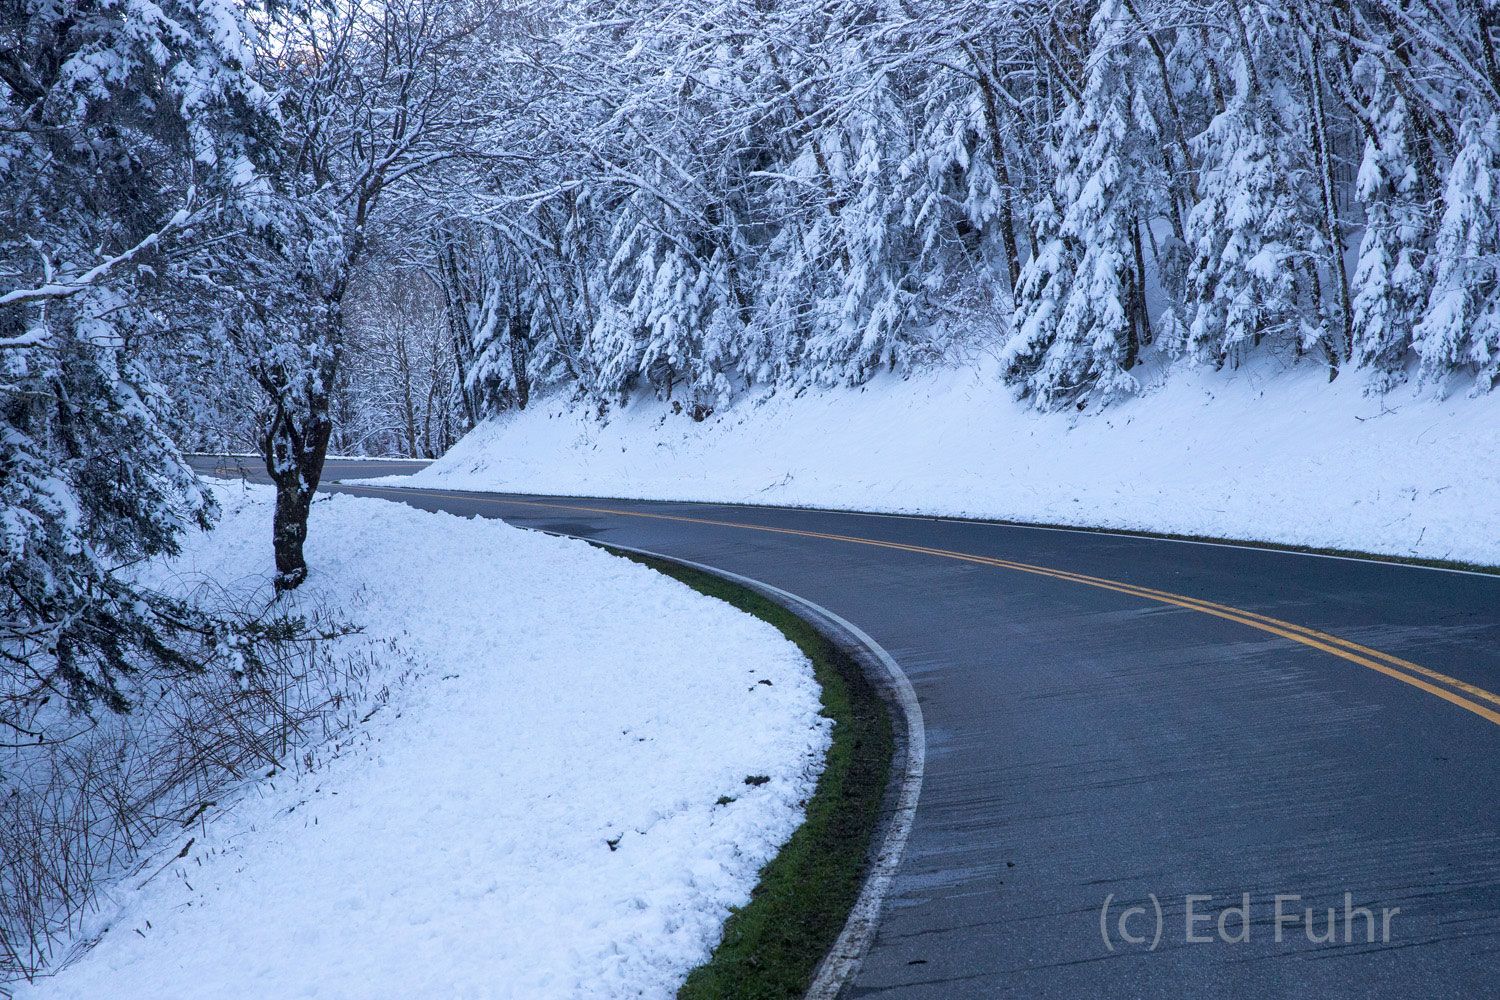 Great smoky mountains, spring, photography, images, snow, road, photo